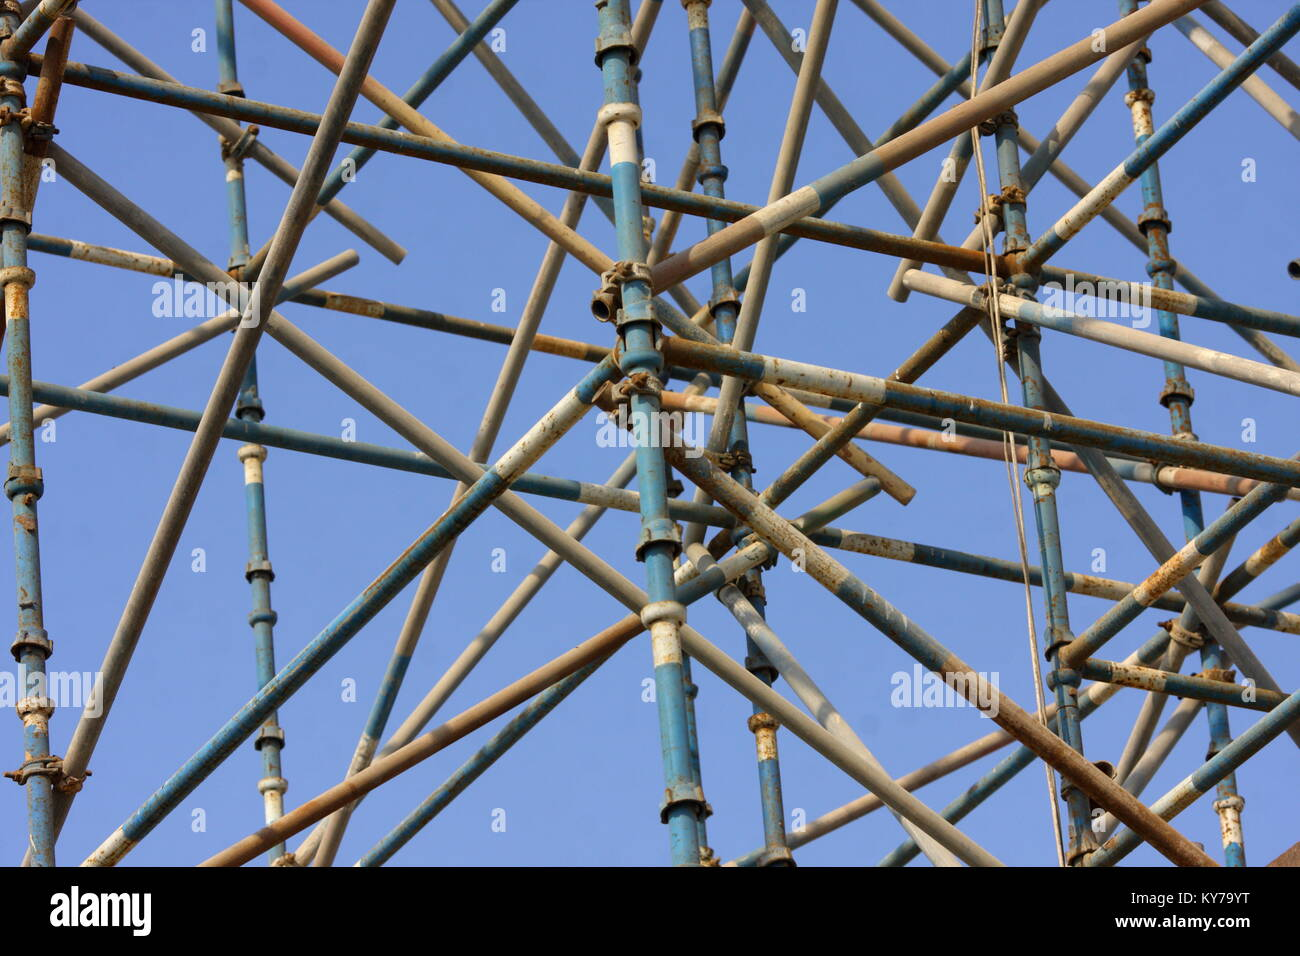 Scaffolding against a blue sky on a building site in Bahrain - Stock Image